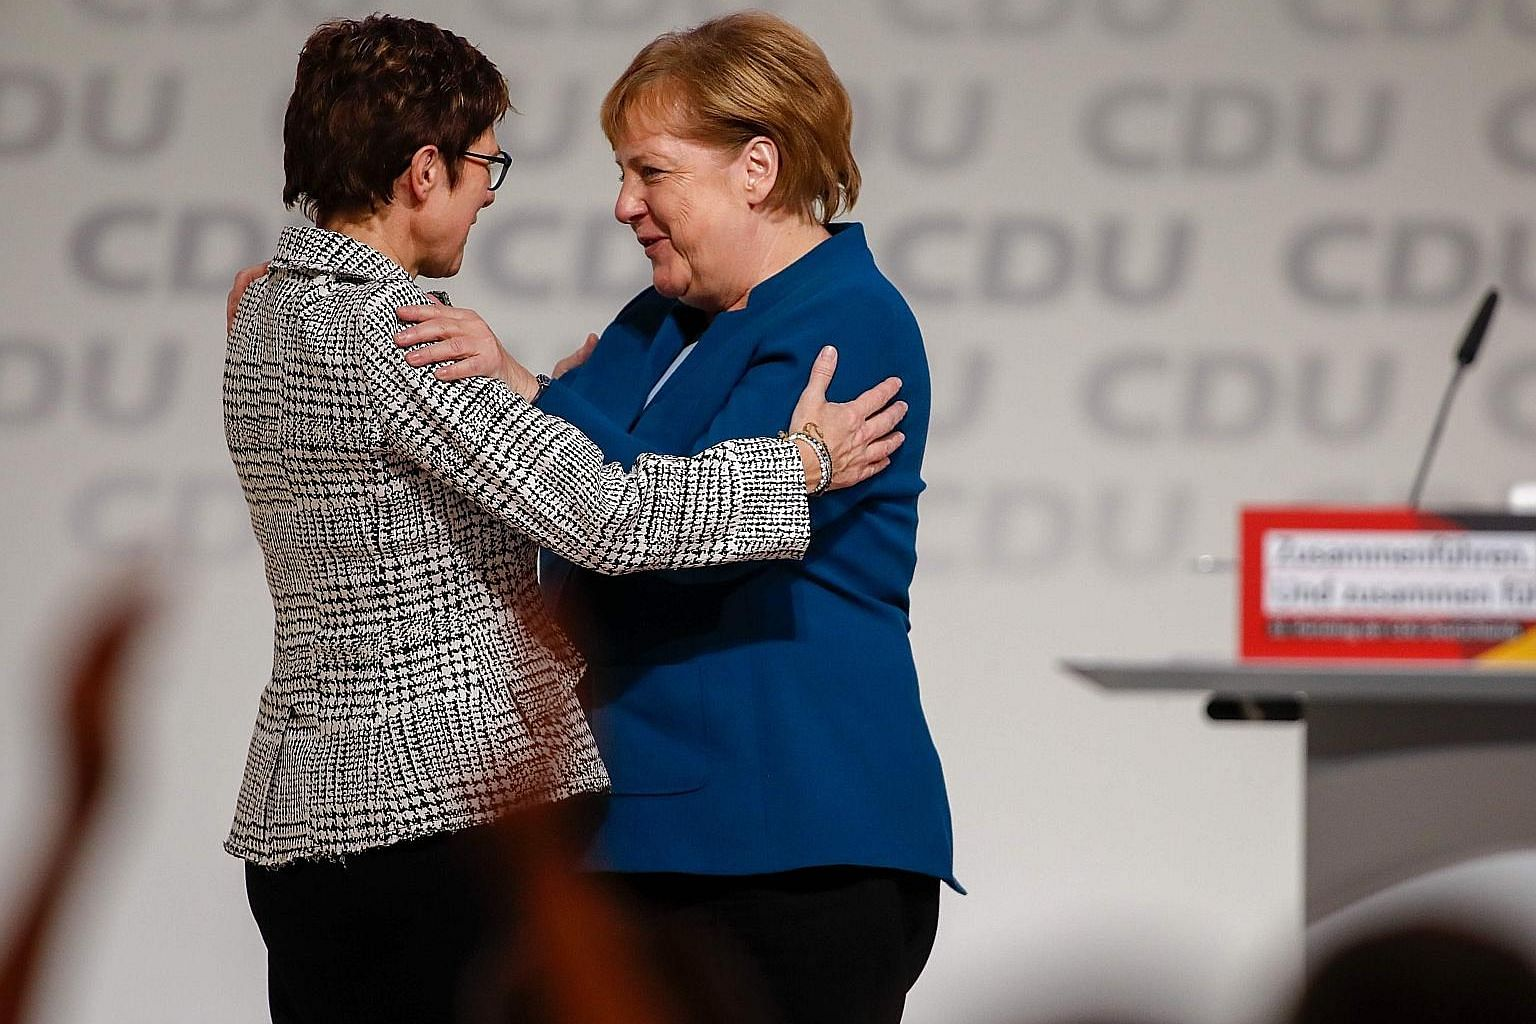 German Chancellor Angela Merkel congratulating her protege, Mrs Annegret Kramp-Karrenbauer, after the latter won a party vote to succeed her as leader of the conservative Christian Democratic Union last Friday. AKK - as she is popularly known by her